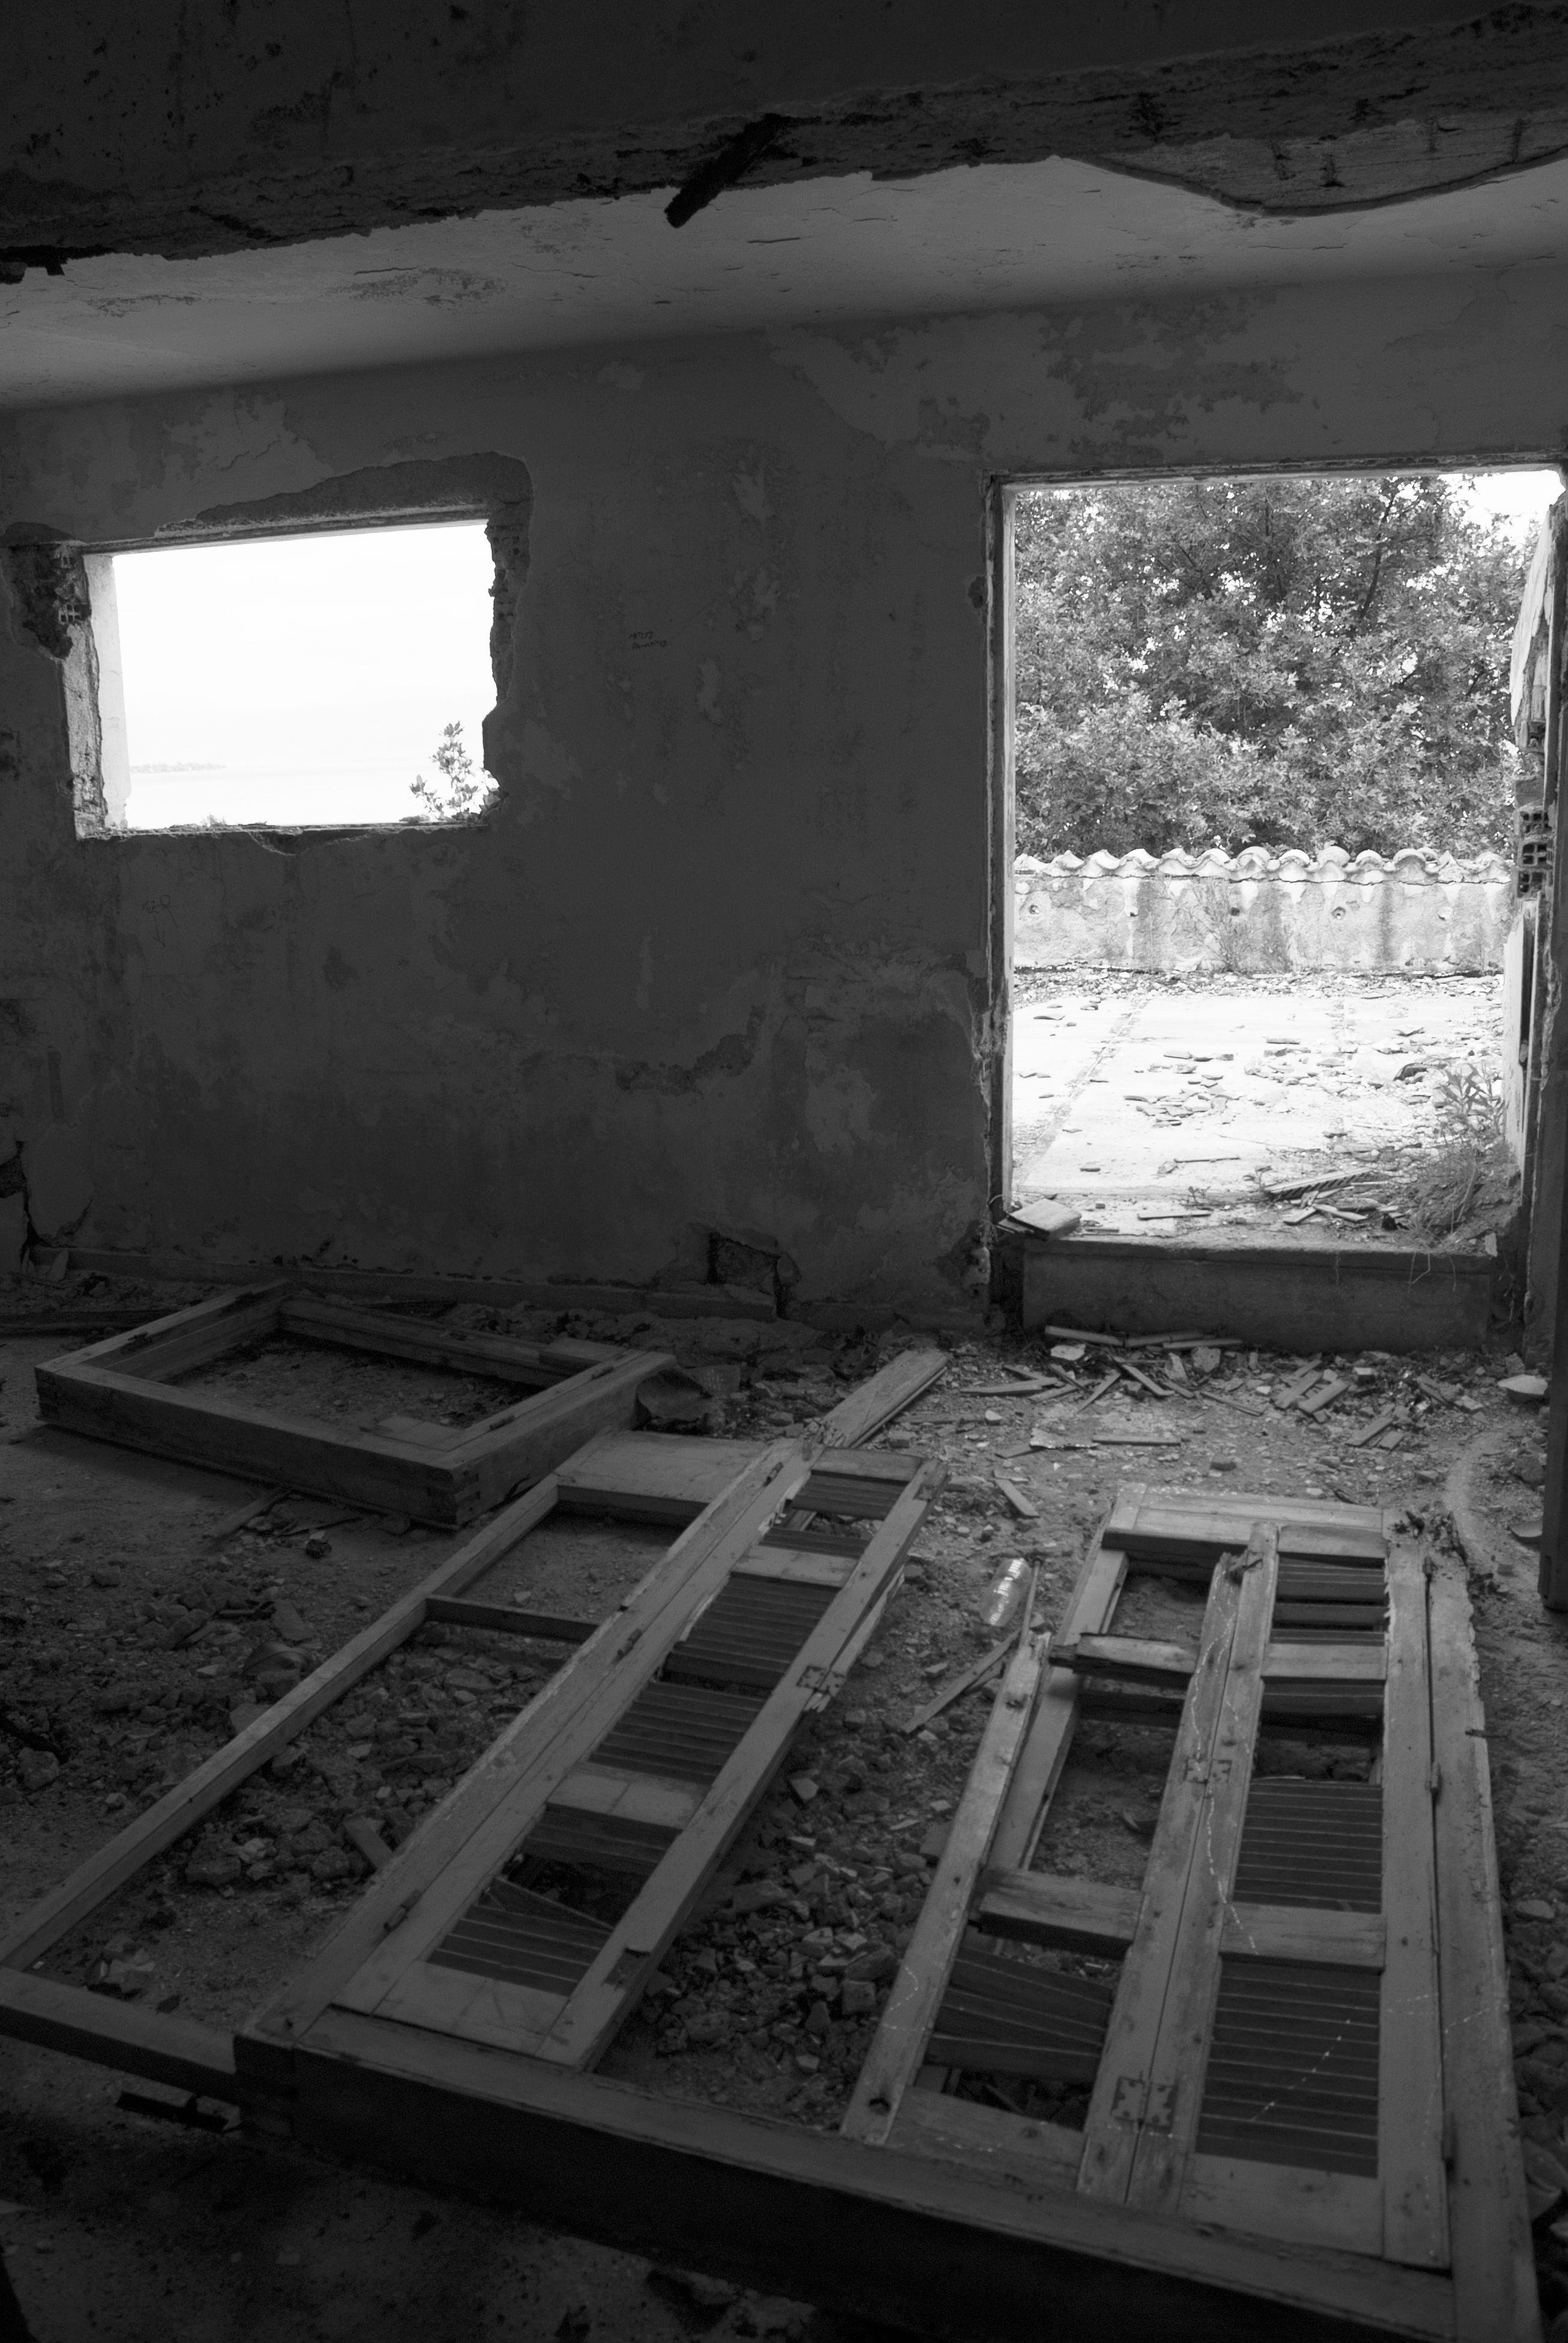 indoors, window, architecture, abandoned, built structure, damaged, obsolete, run-down, house, deterioration, old, interior, wall - building feature, bad condition, glass - material, building, ceiling, day, no people, building exterior